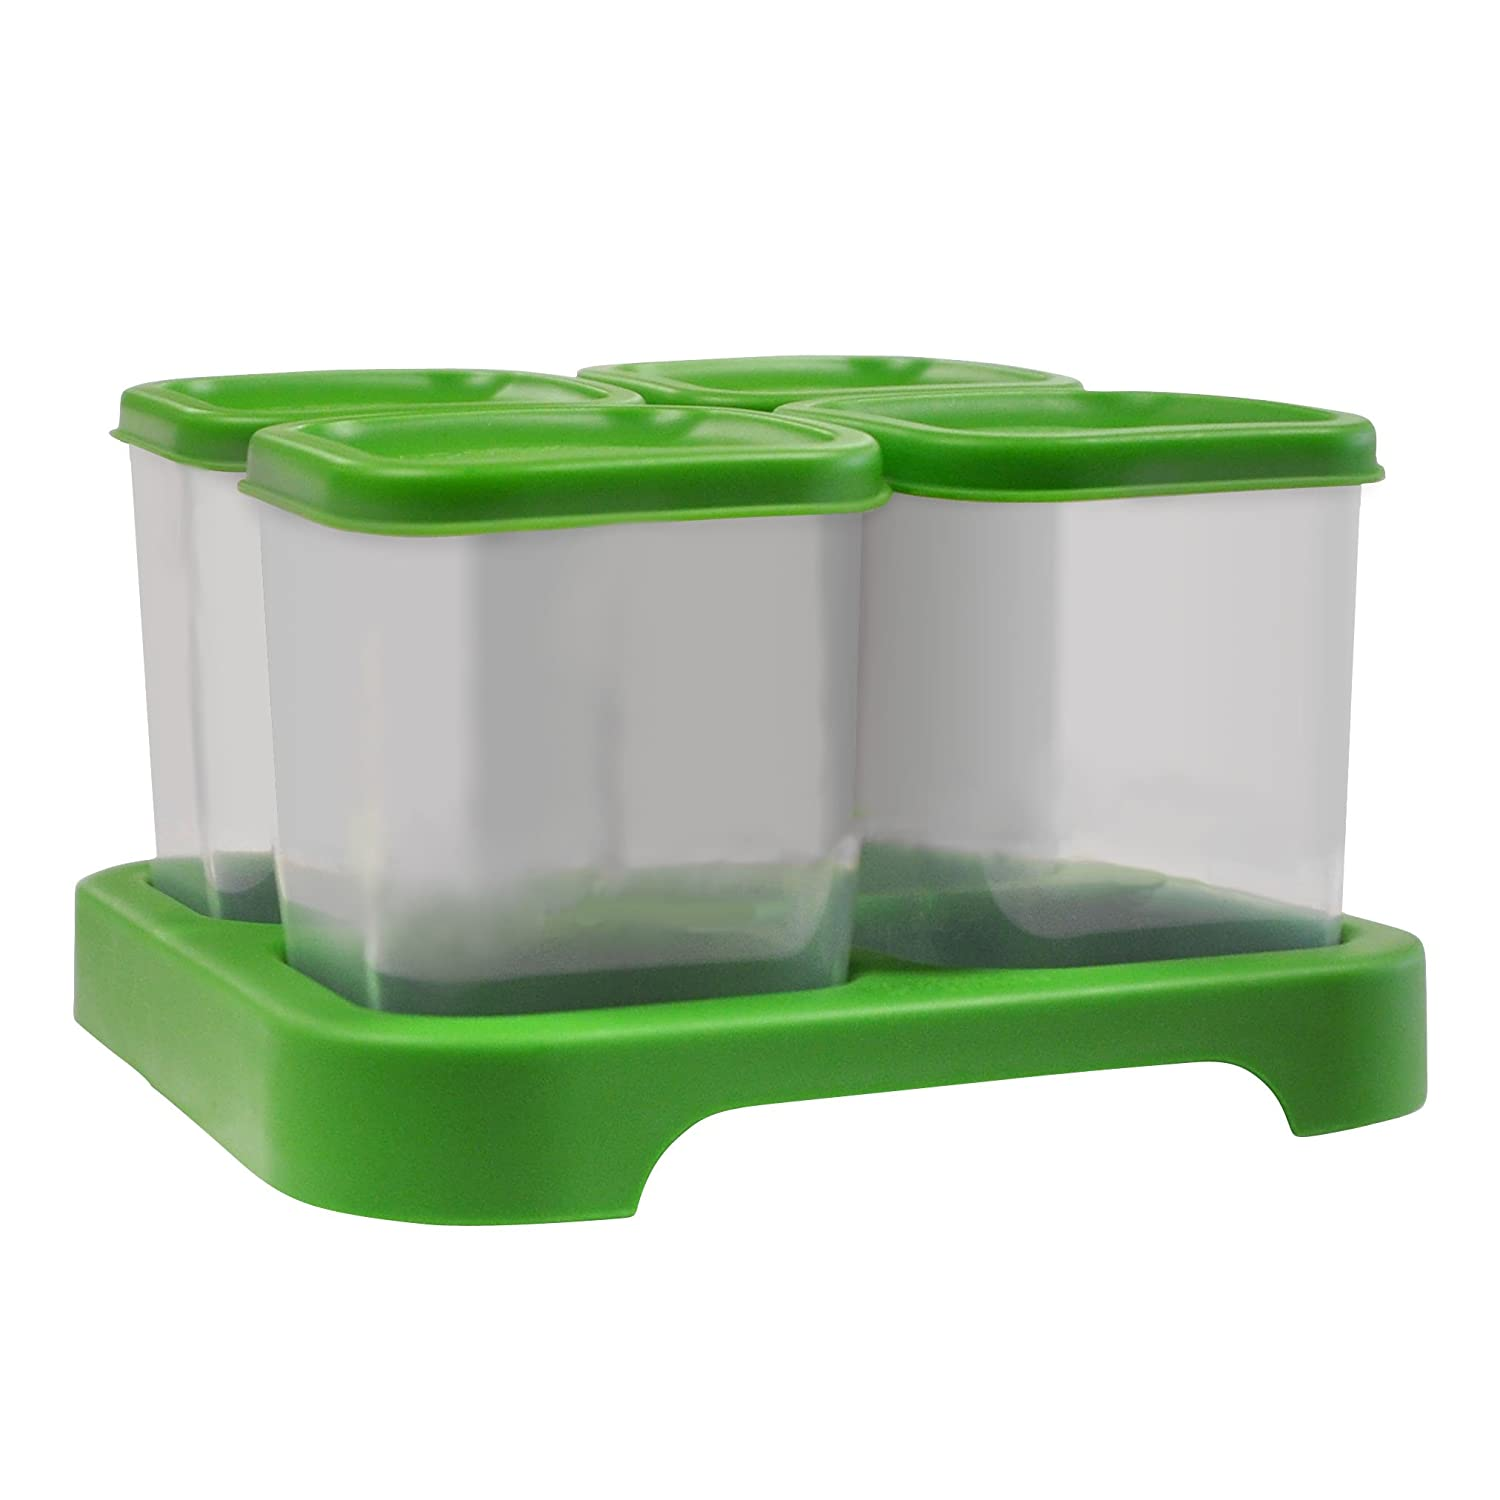 4oz plastic baby food container